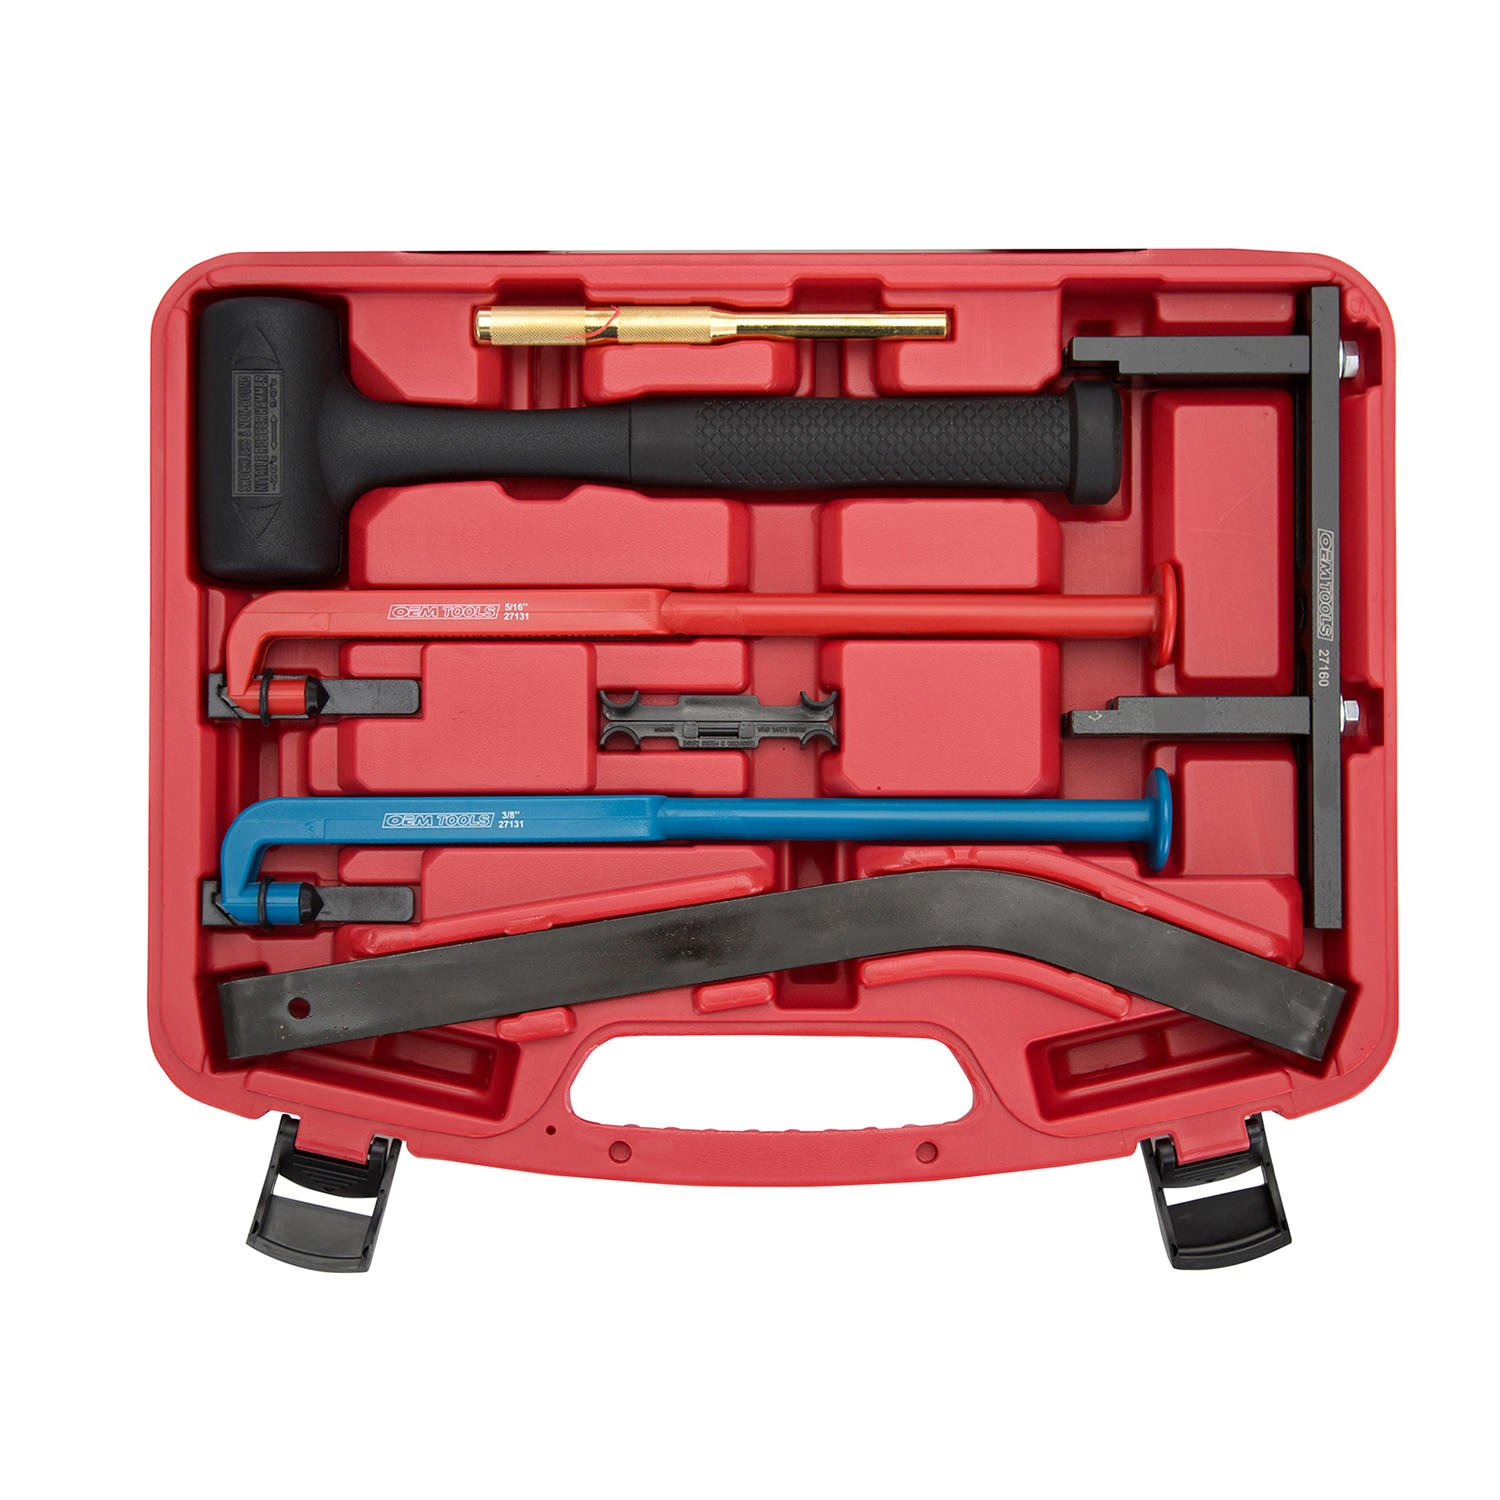 OEMTOOLS  27160 Fuel Pump Replacement Kit by OEMTOOLS (Image #1)